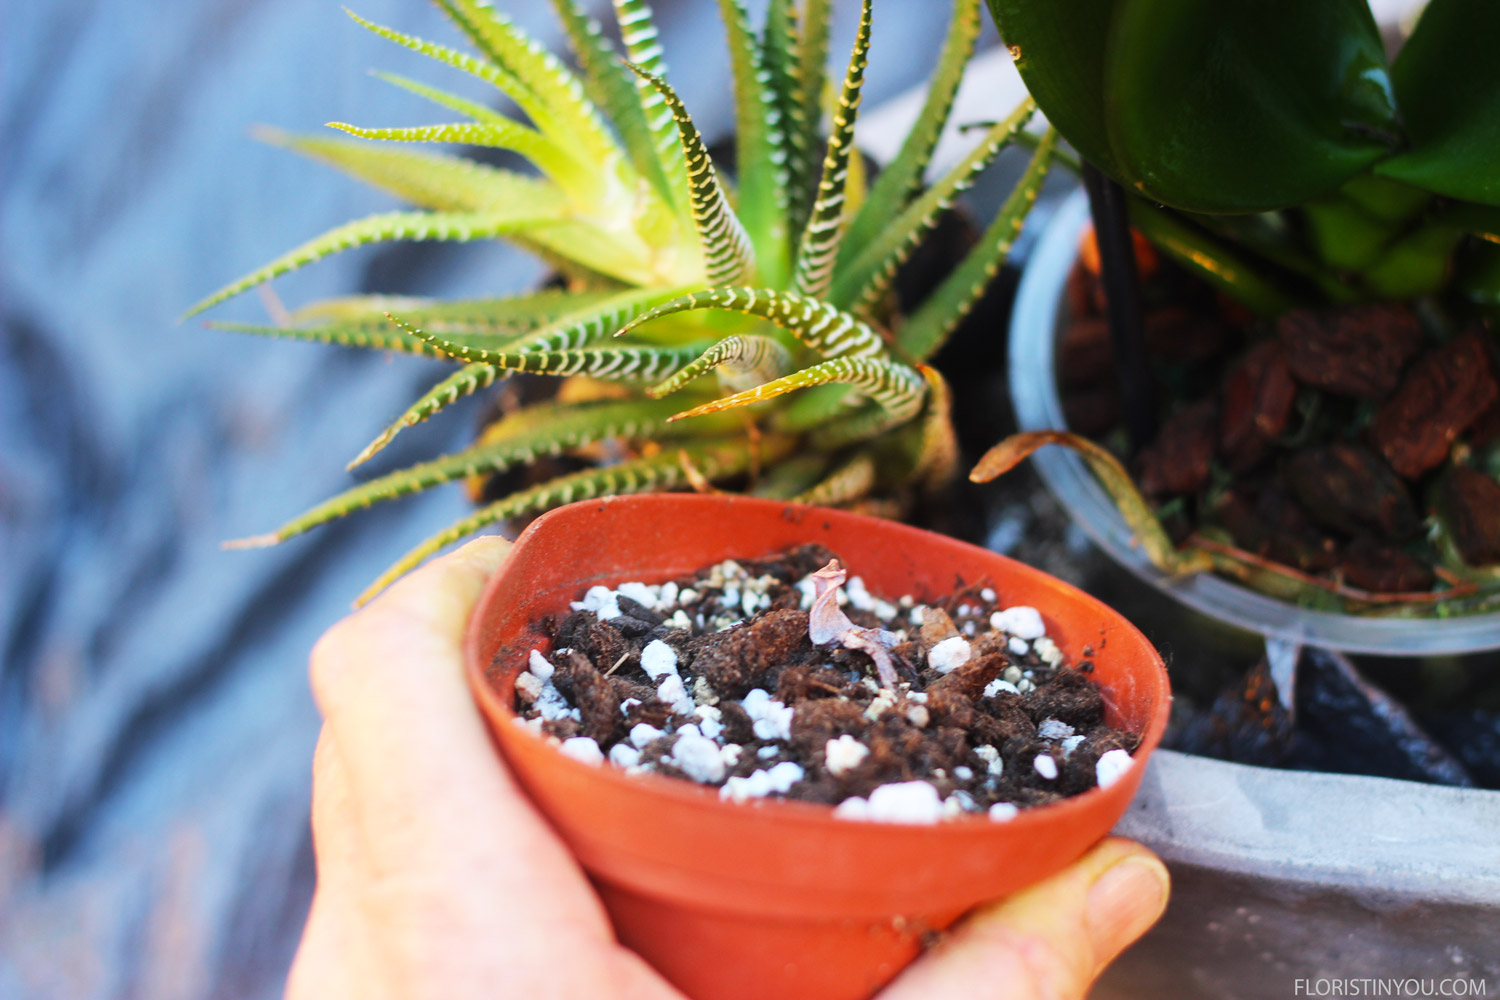 Fill around all plant cups up to their rim.